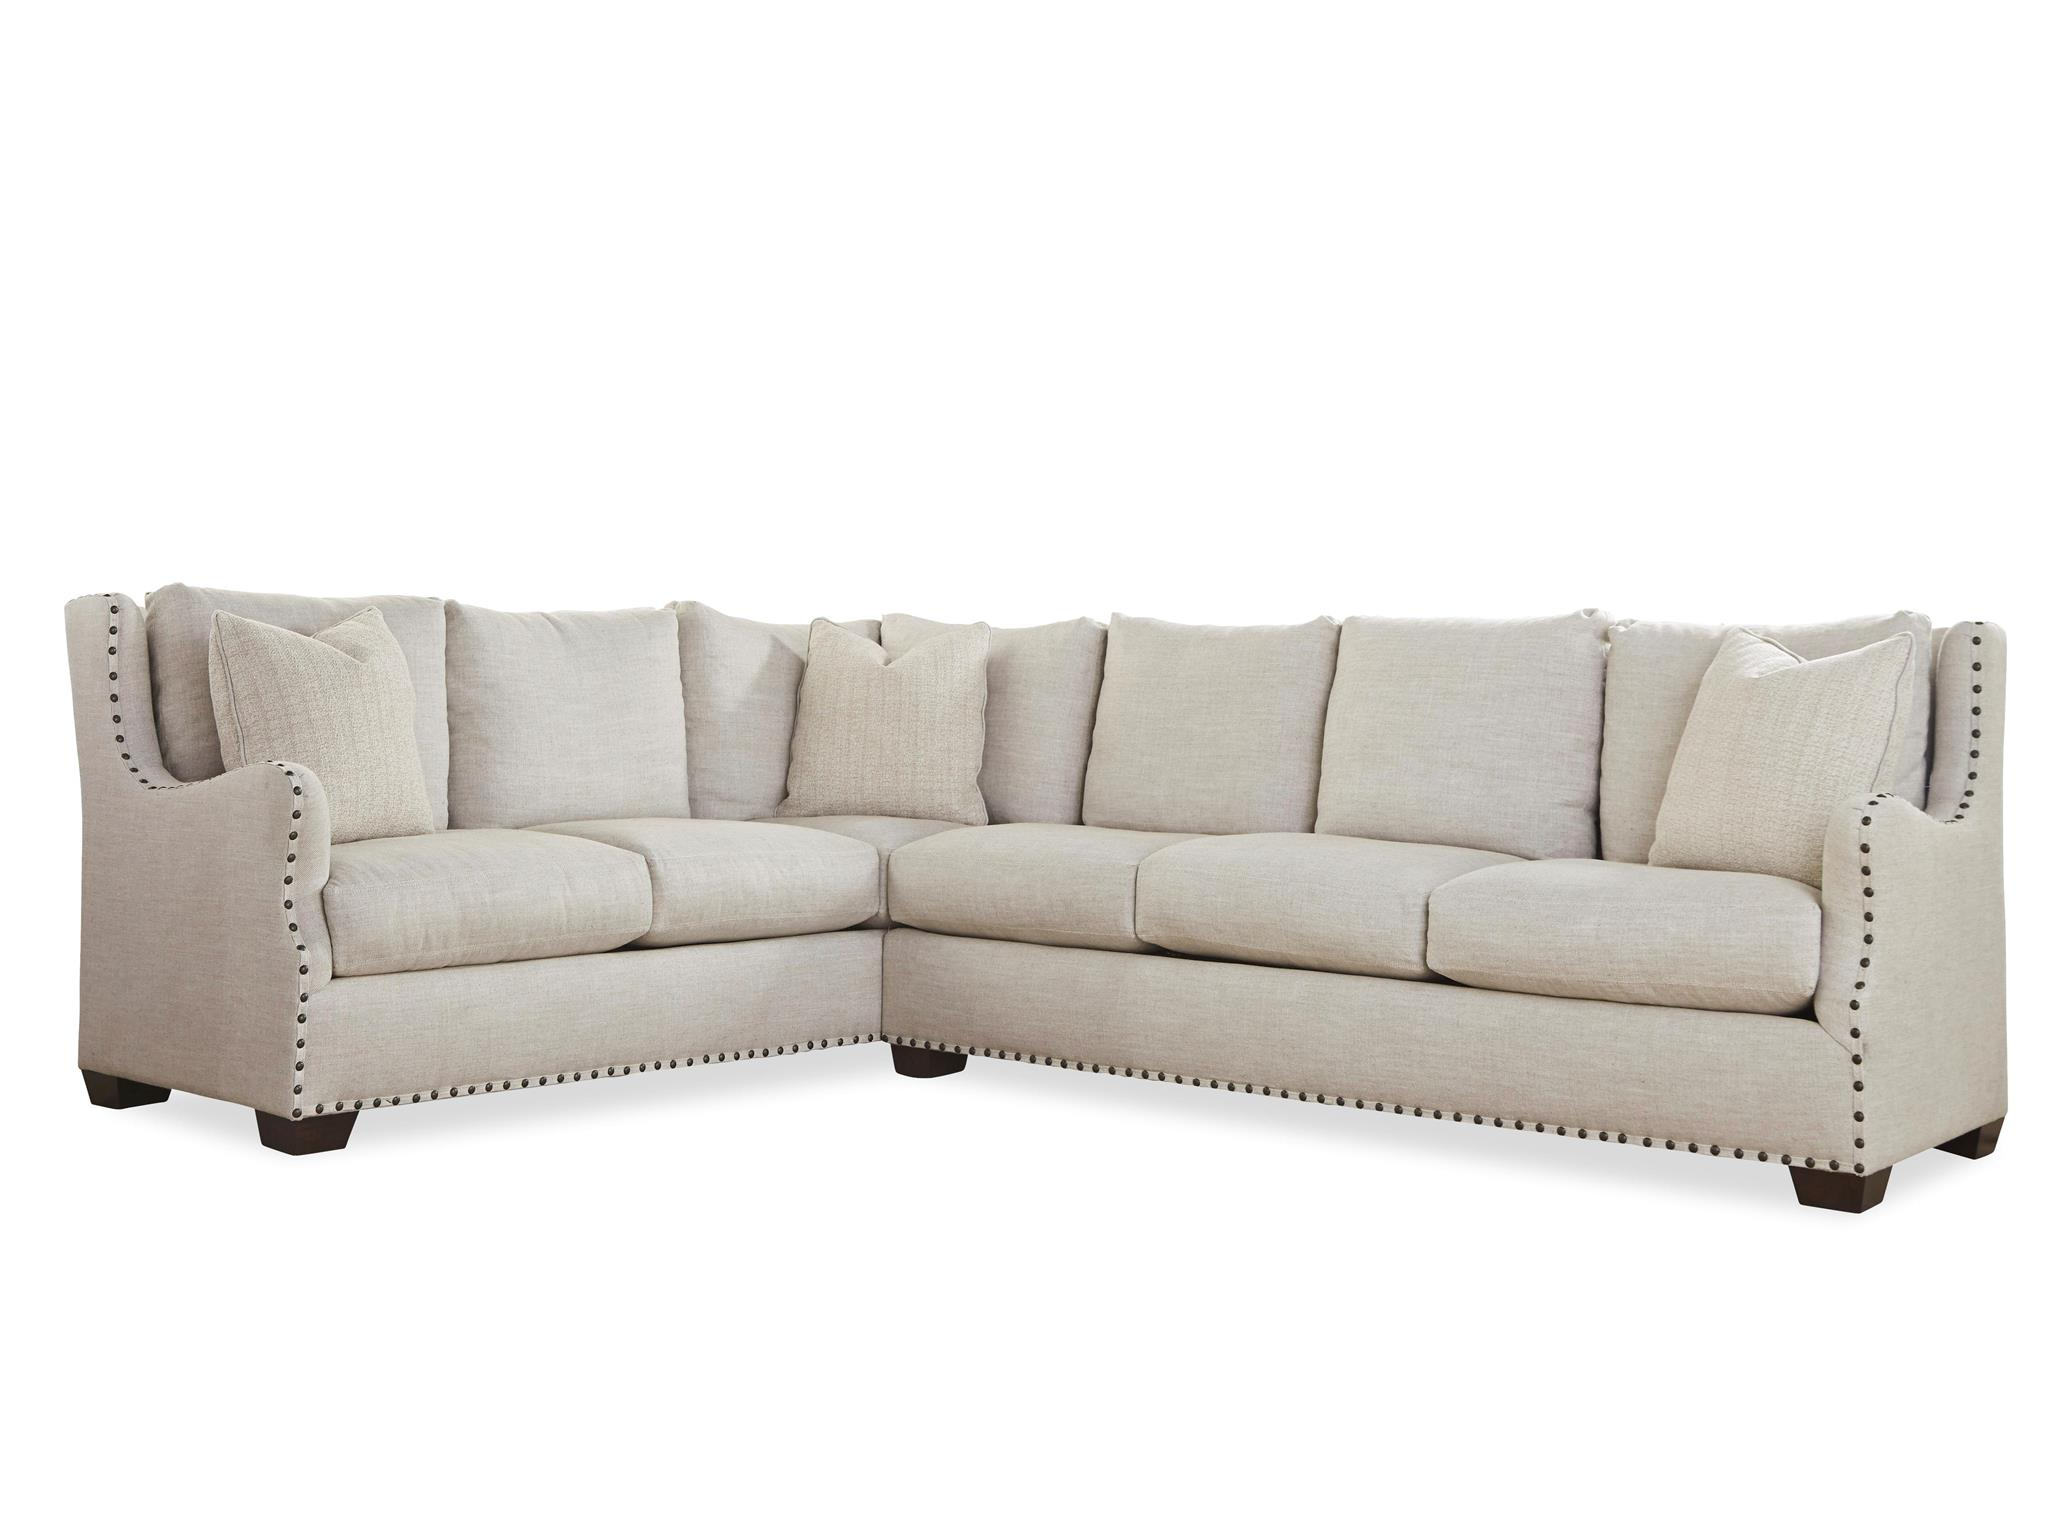 Connor Sectional Right Arm Sofa Left Corner Loading Zoom